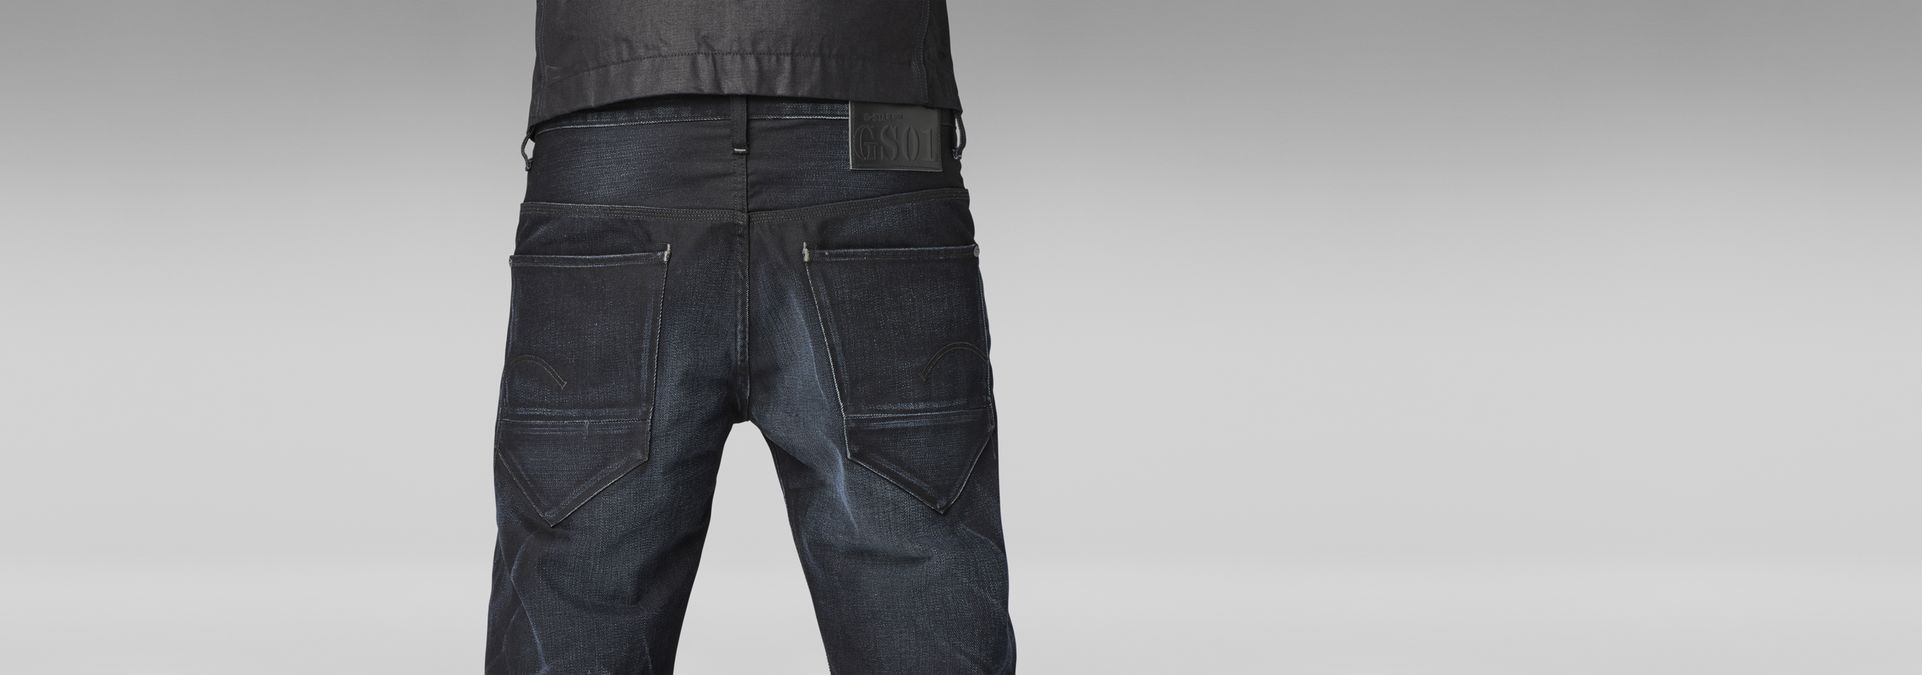 newest quite nice special sales New Radar Loose Jeans | Medium Aged | G-Star RAW®